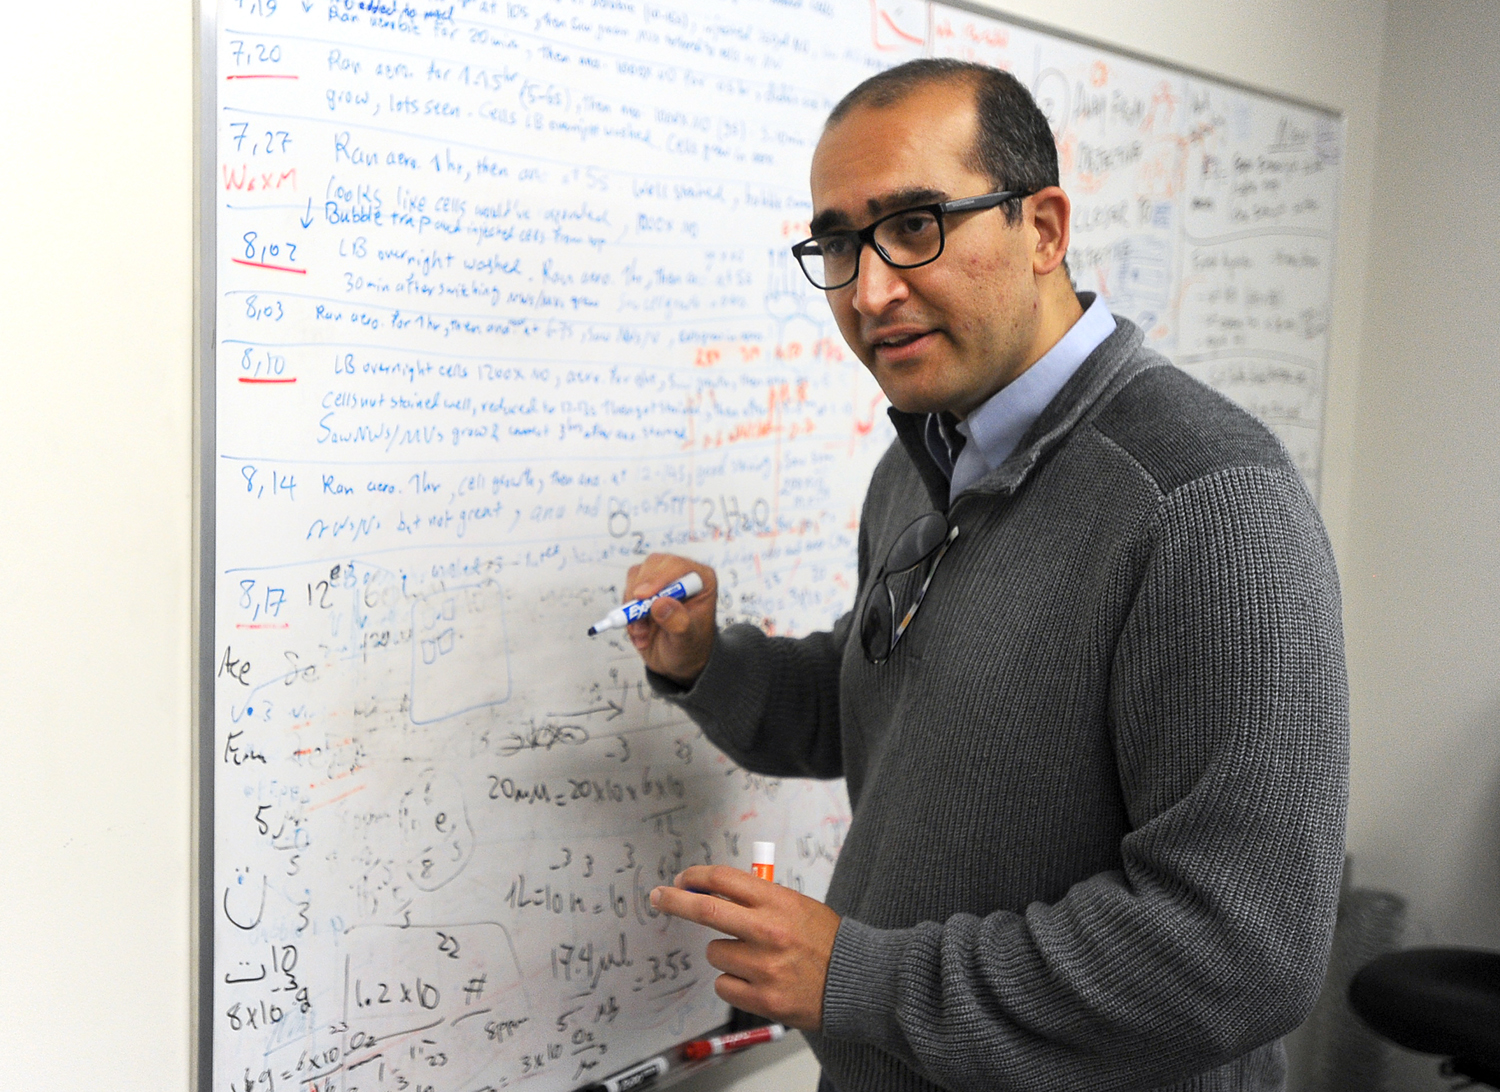 Moh El-Naggar, an assistant professor of physics at the University of Southern California, stands at the grease board where he and his team brainstorm ideas about their work involving biological electron transport. El-Naggar and other scientists at USC are doing basic research to determine how certain bacteria are able to transfer electrons great distances from themselves to other cells or inorganic minerals. Photograph by Kent Treptow for PBSNewsHour